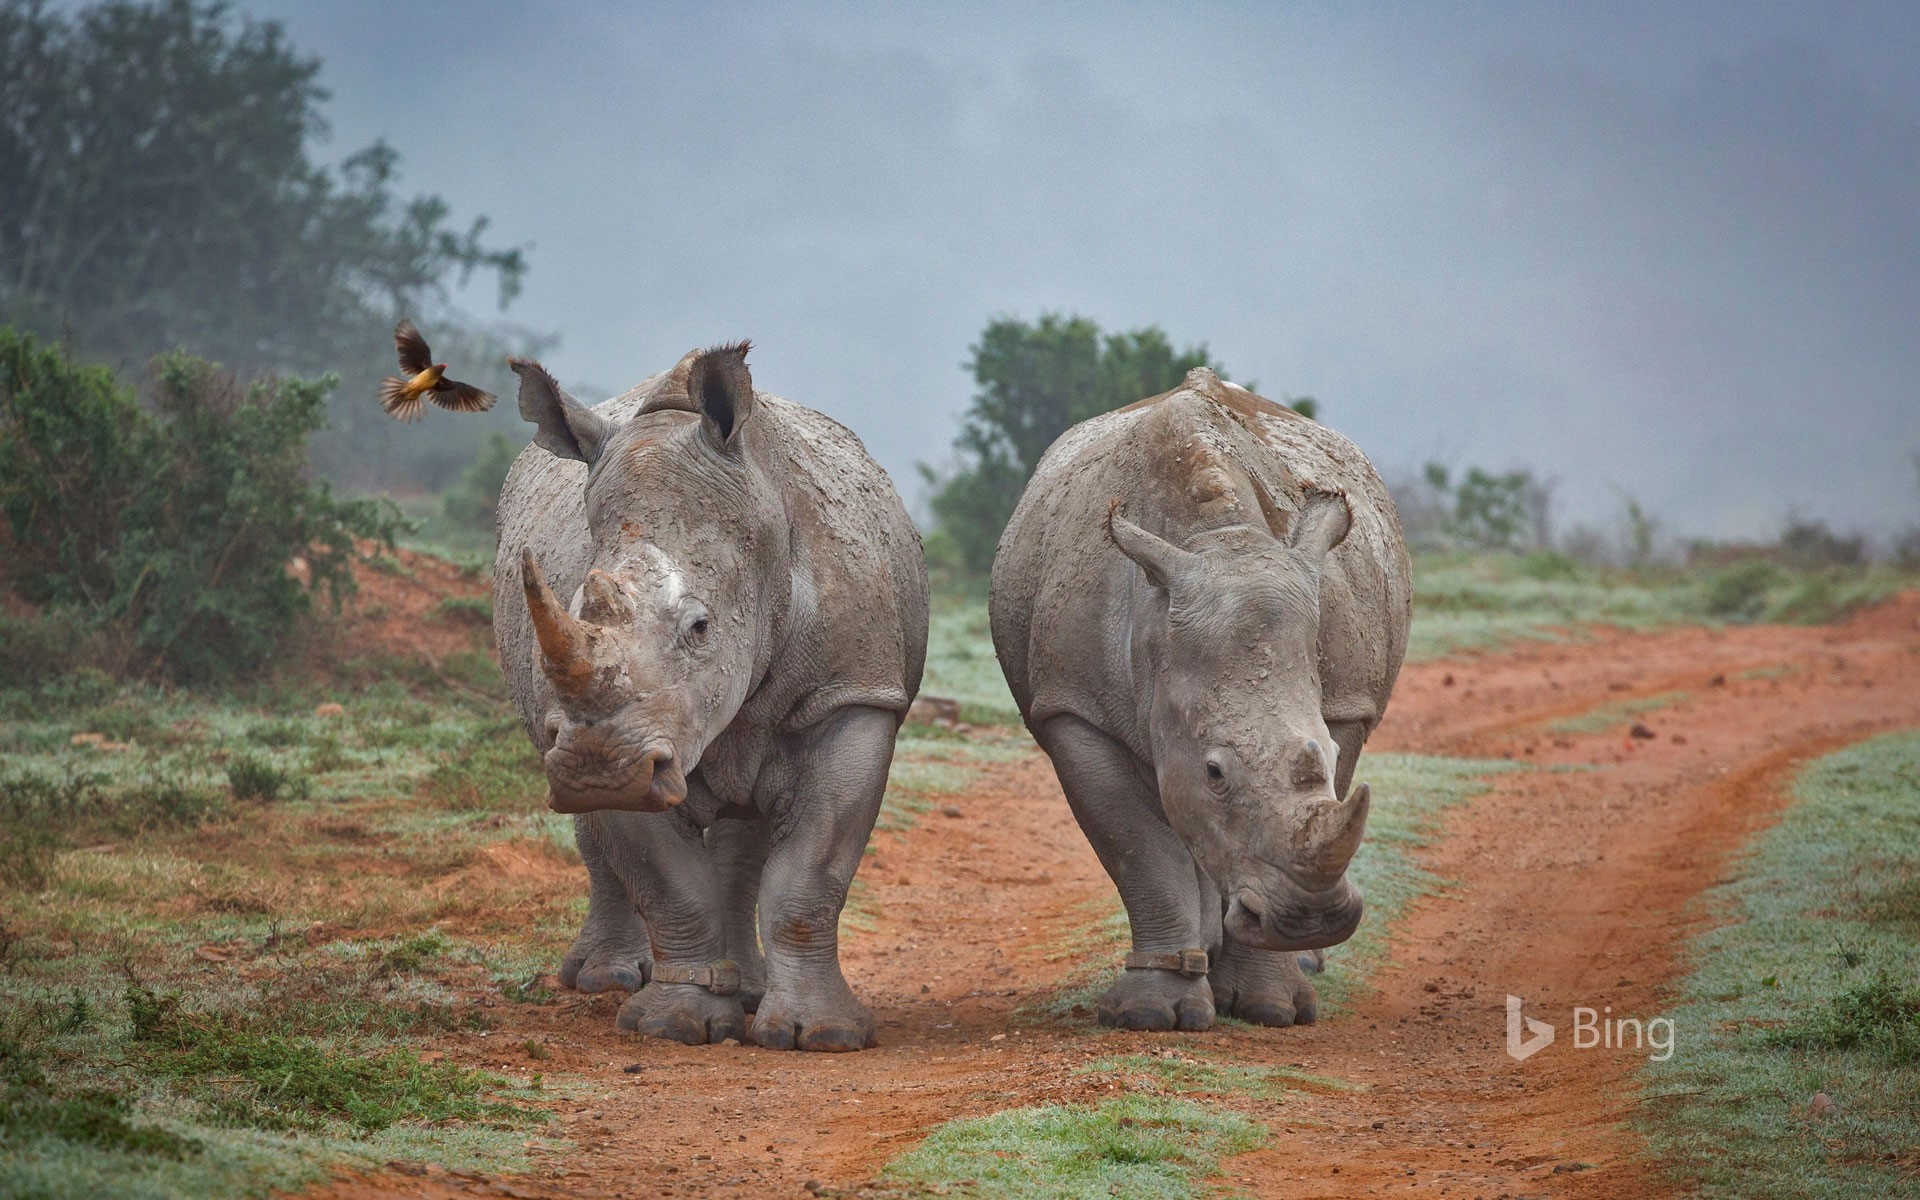 Rhinos and an oxpecker bird in the Amakhala Game Reserve, South Africa